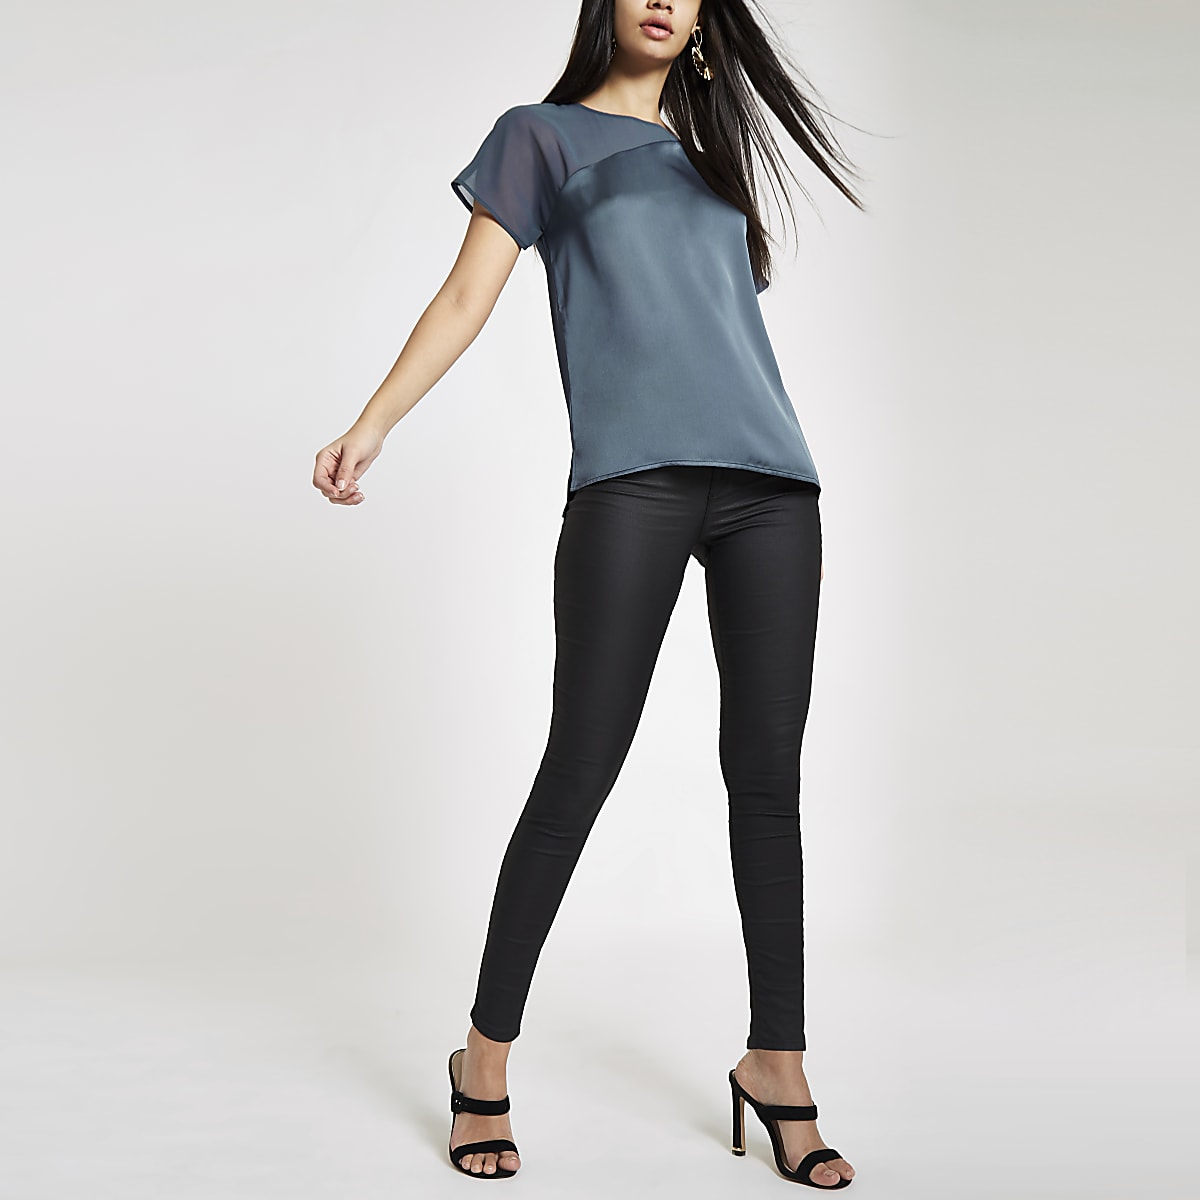 Teal asymmetric loose fit top